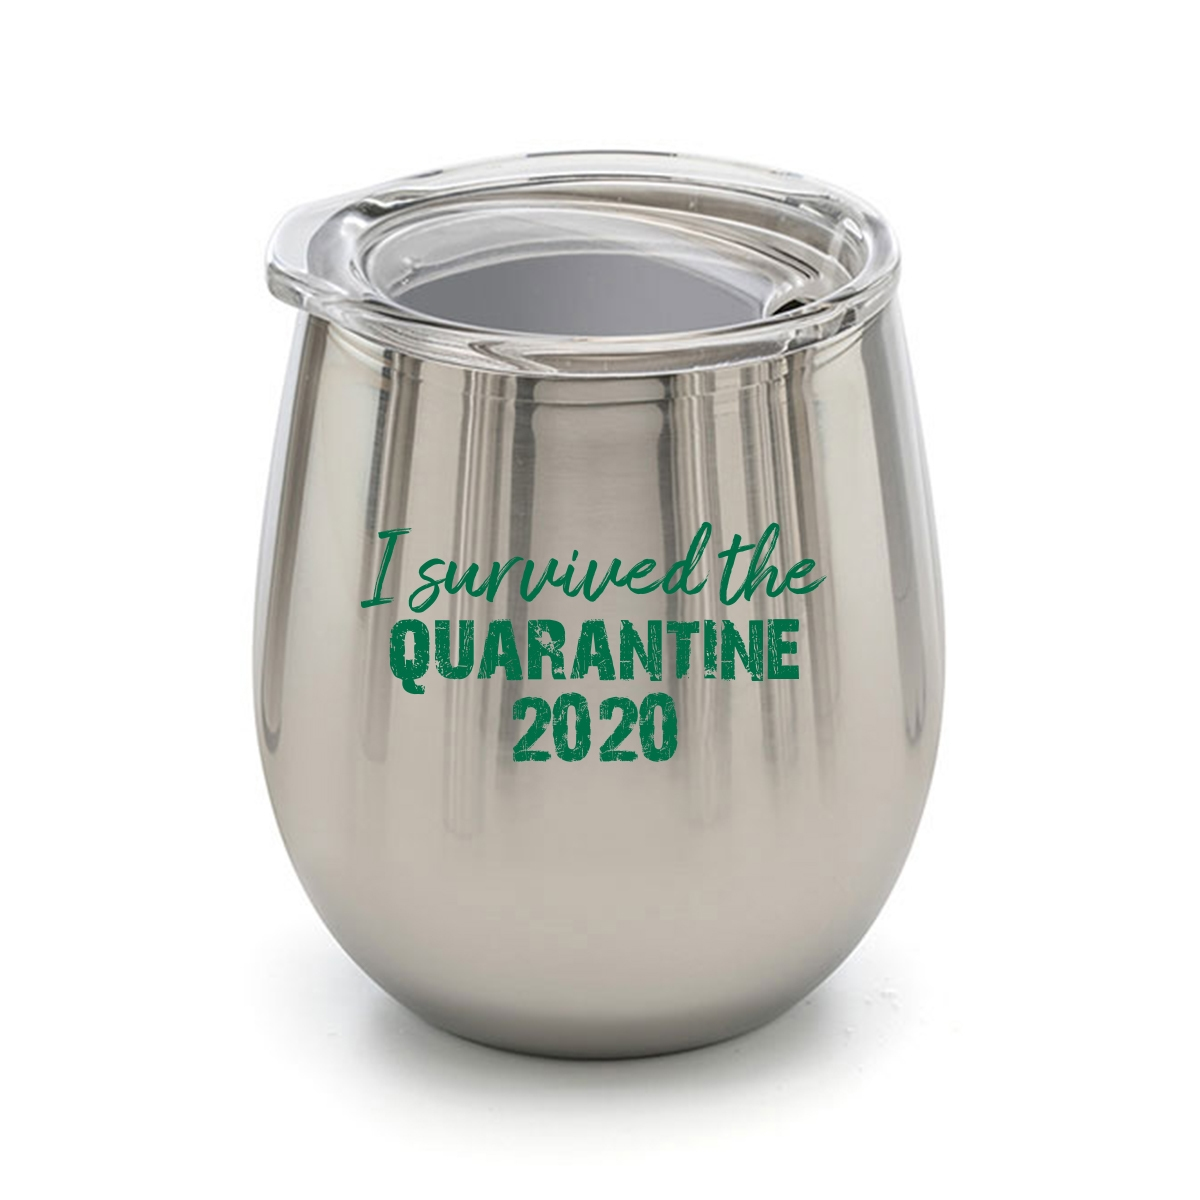 Stainless steel wine tumbler with fun quarantine saying